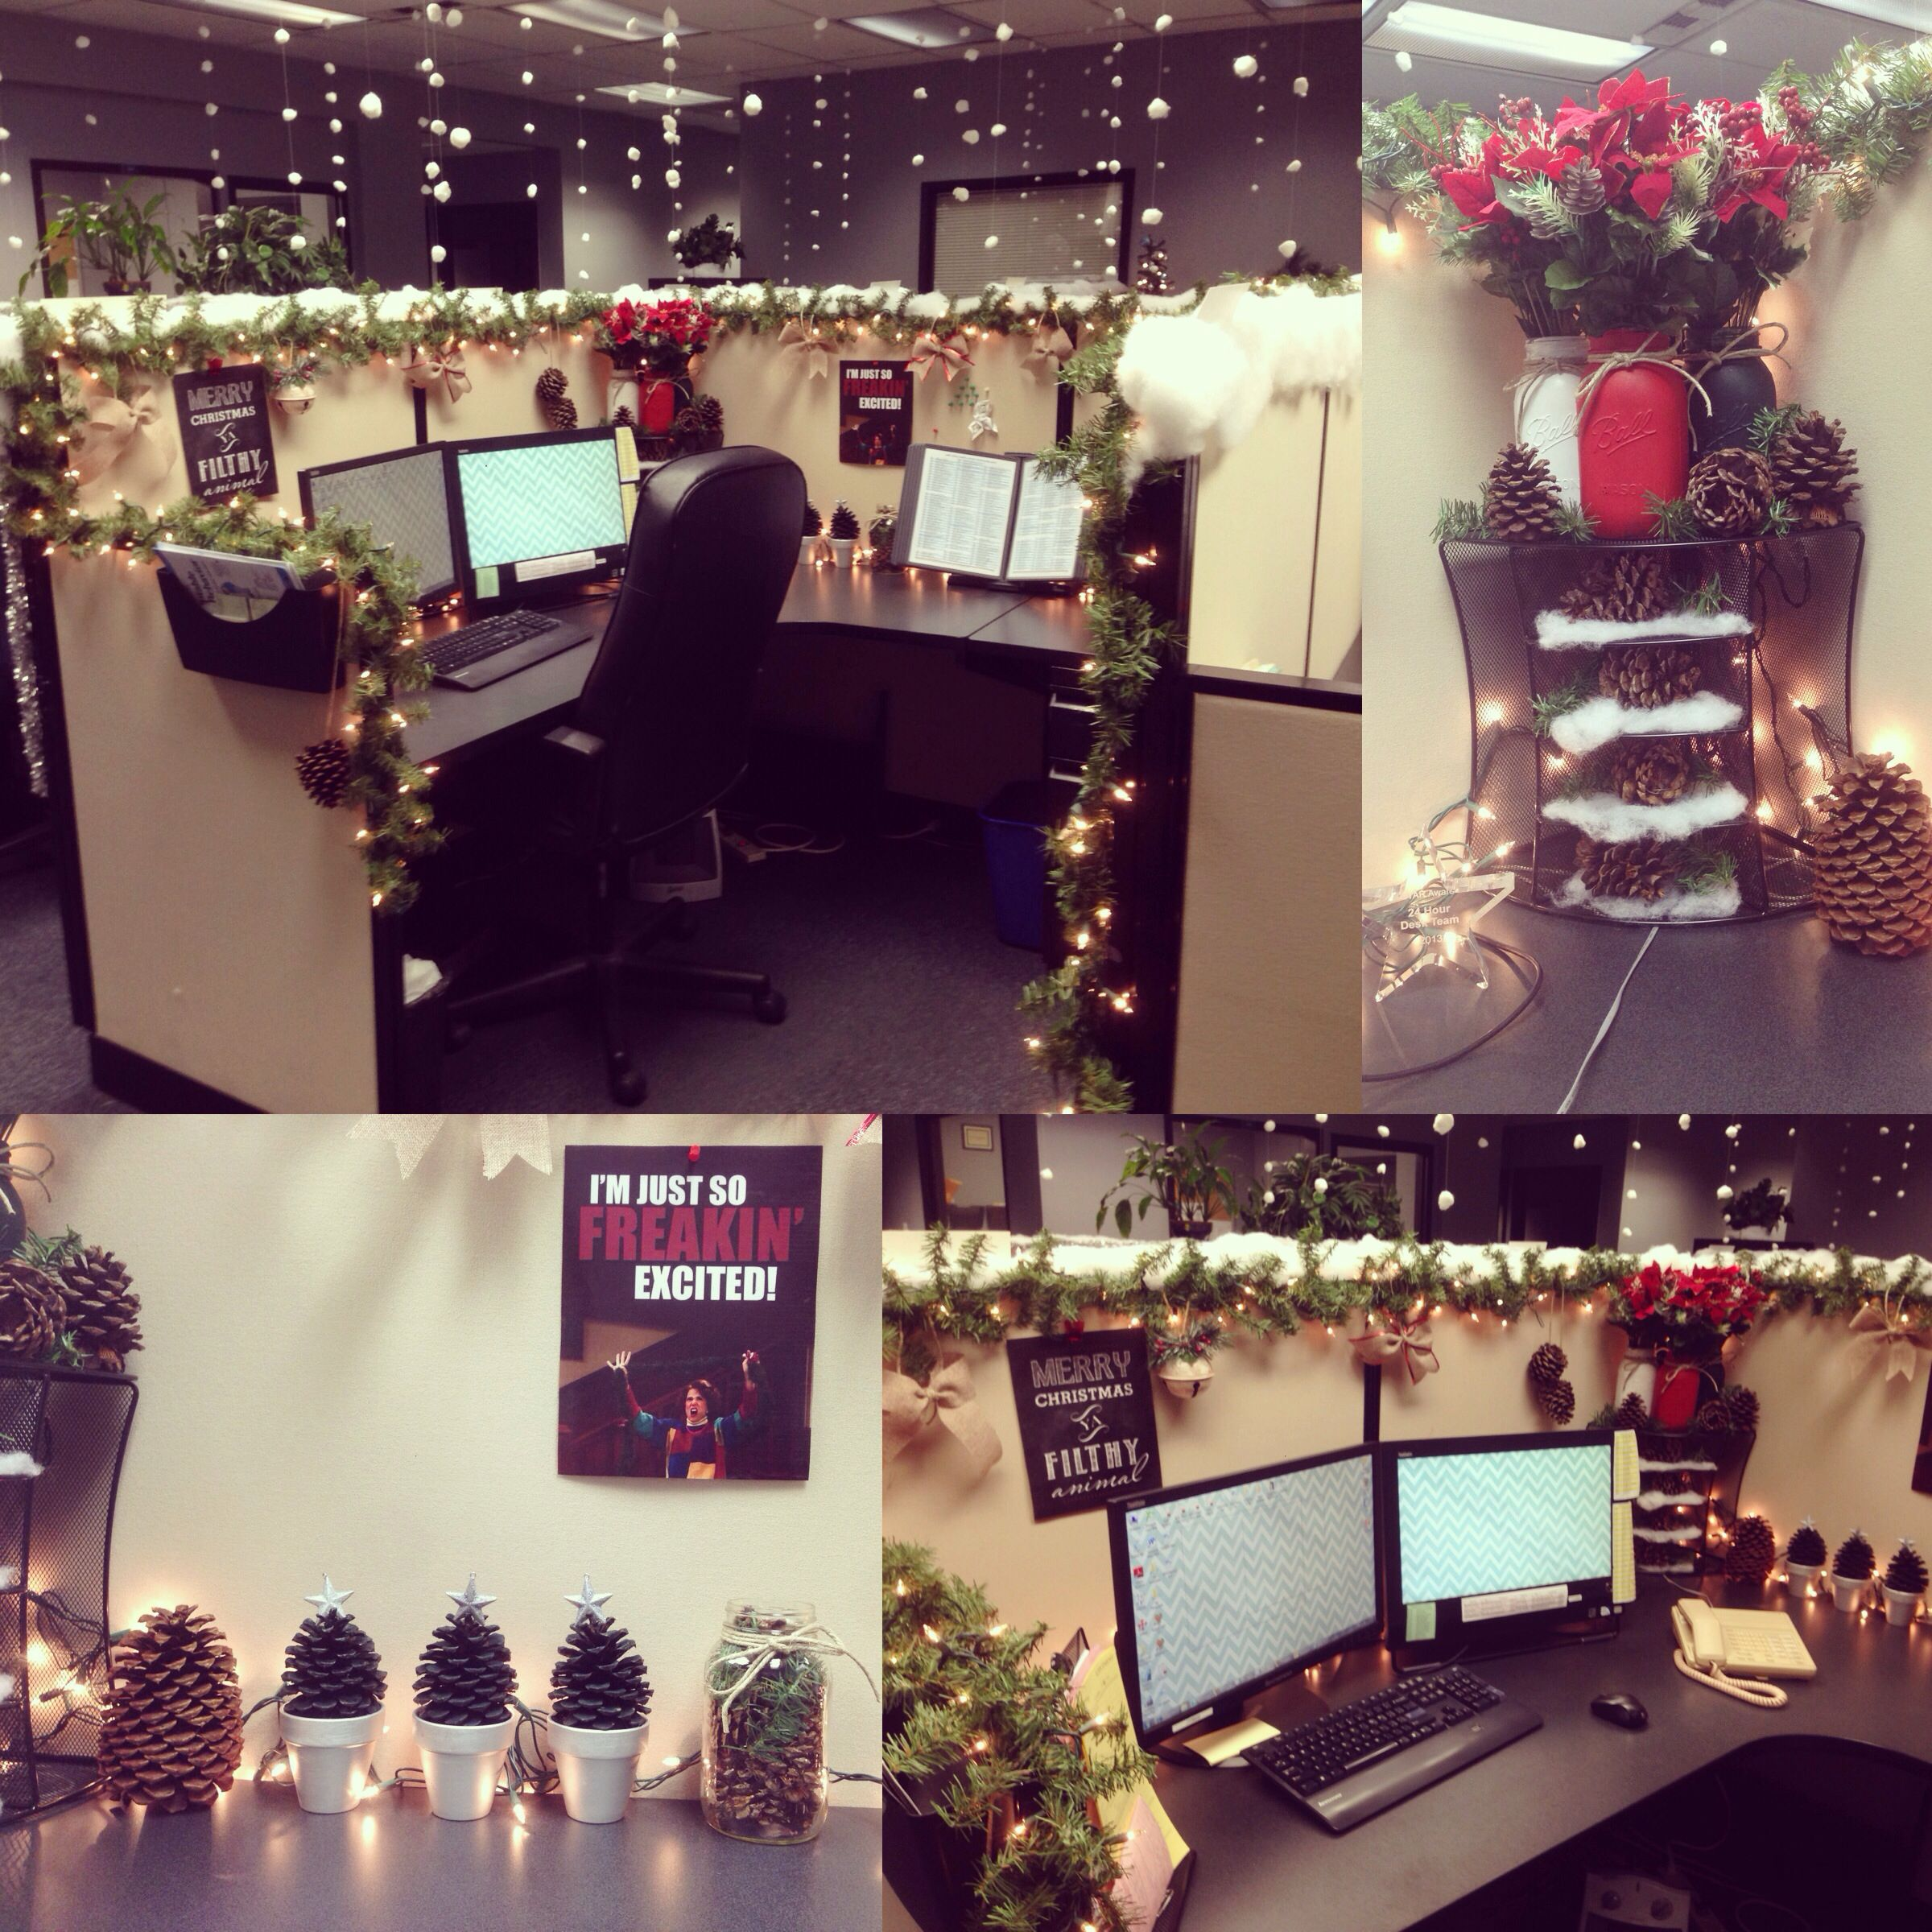 My Cubicle Decorated For Christmas.